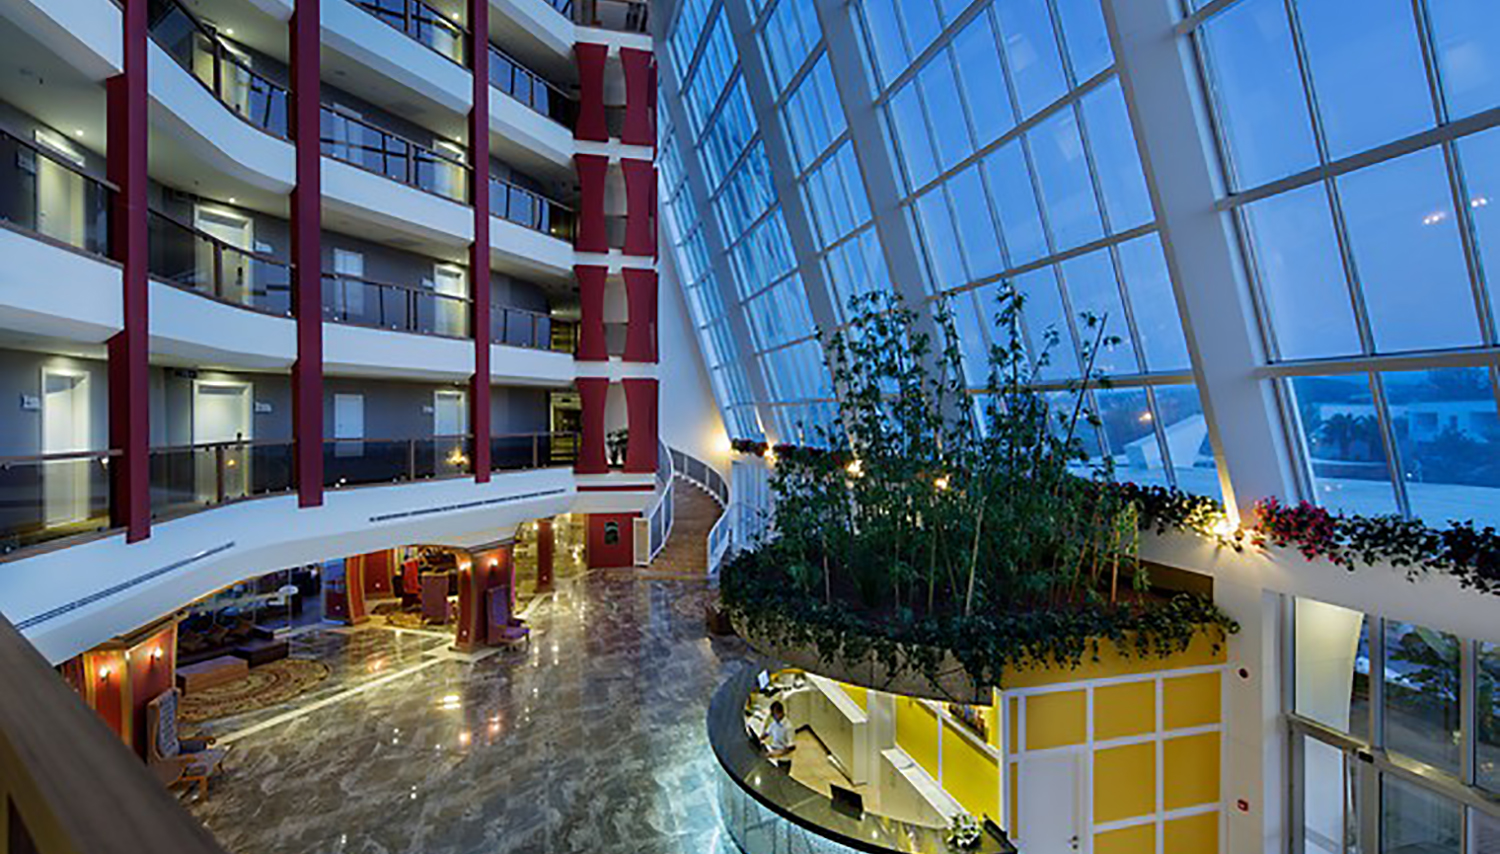 Senza The Inn hotell (Antalya, Türgi)